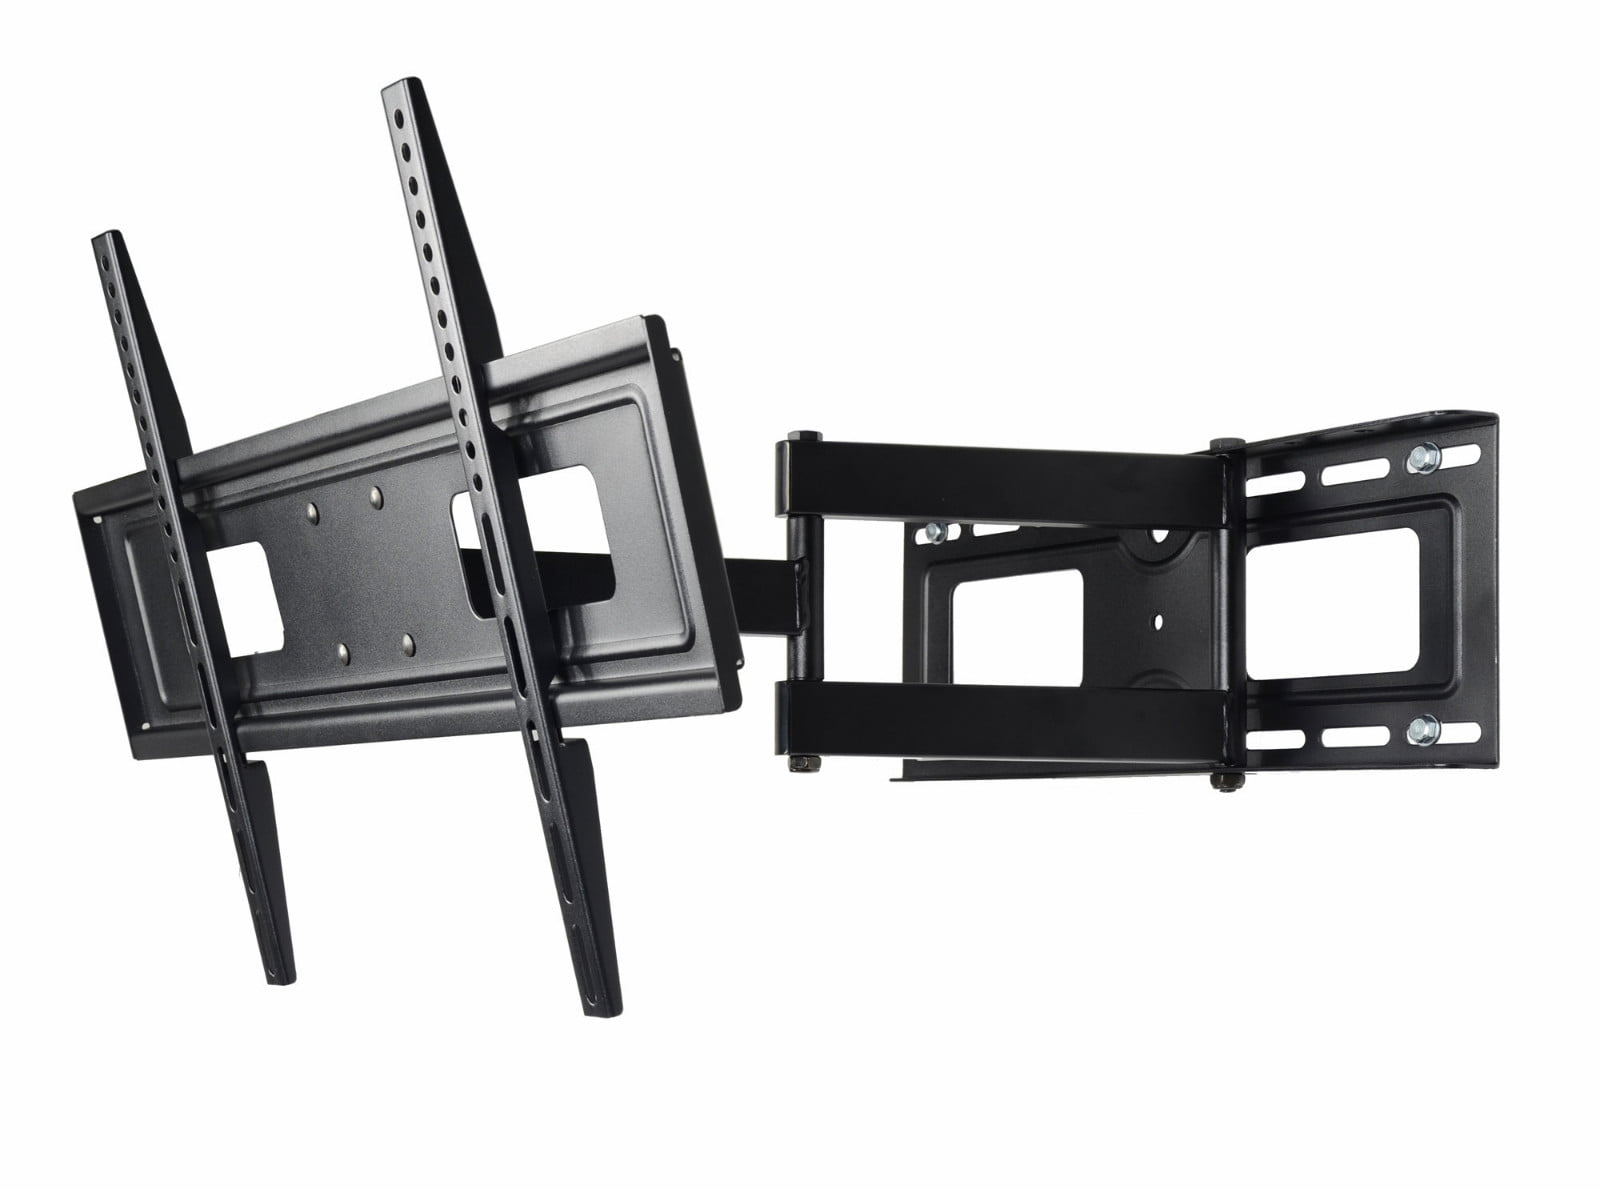 """VideoSecu Articulating TV Wall Mount for 32 42 47 50 55 58"""" LCD LED Plasma HDTV Flat... by VideoSecu"""